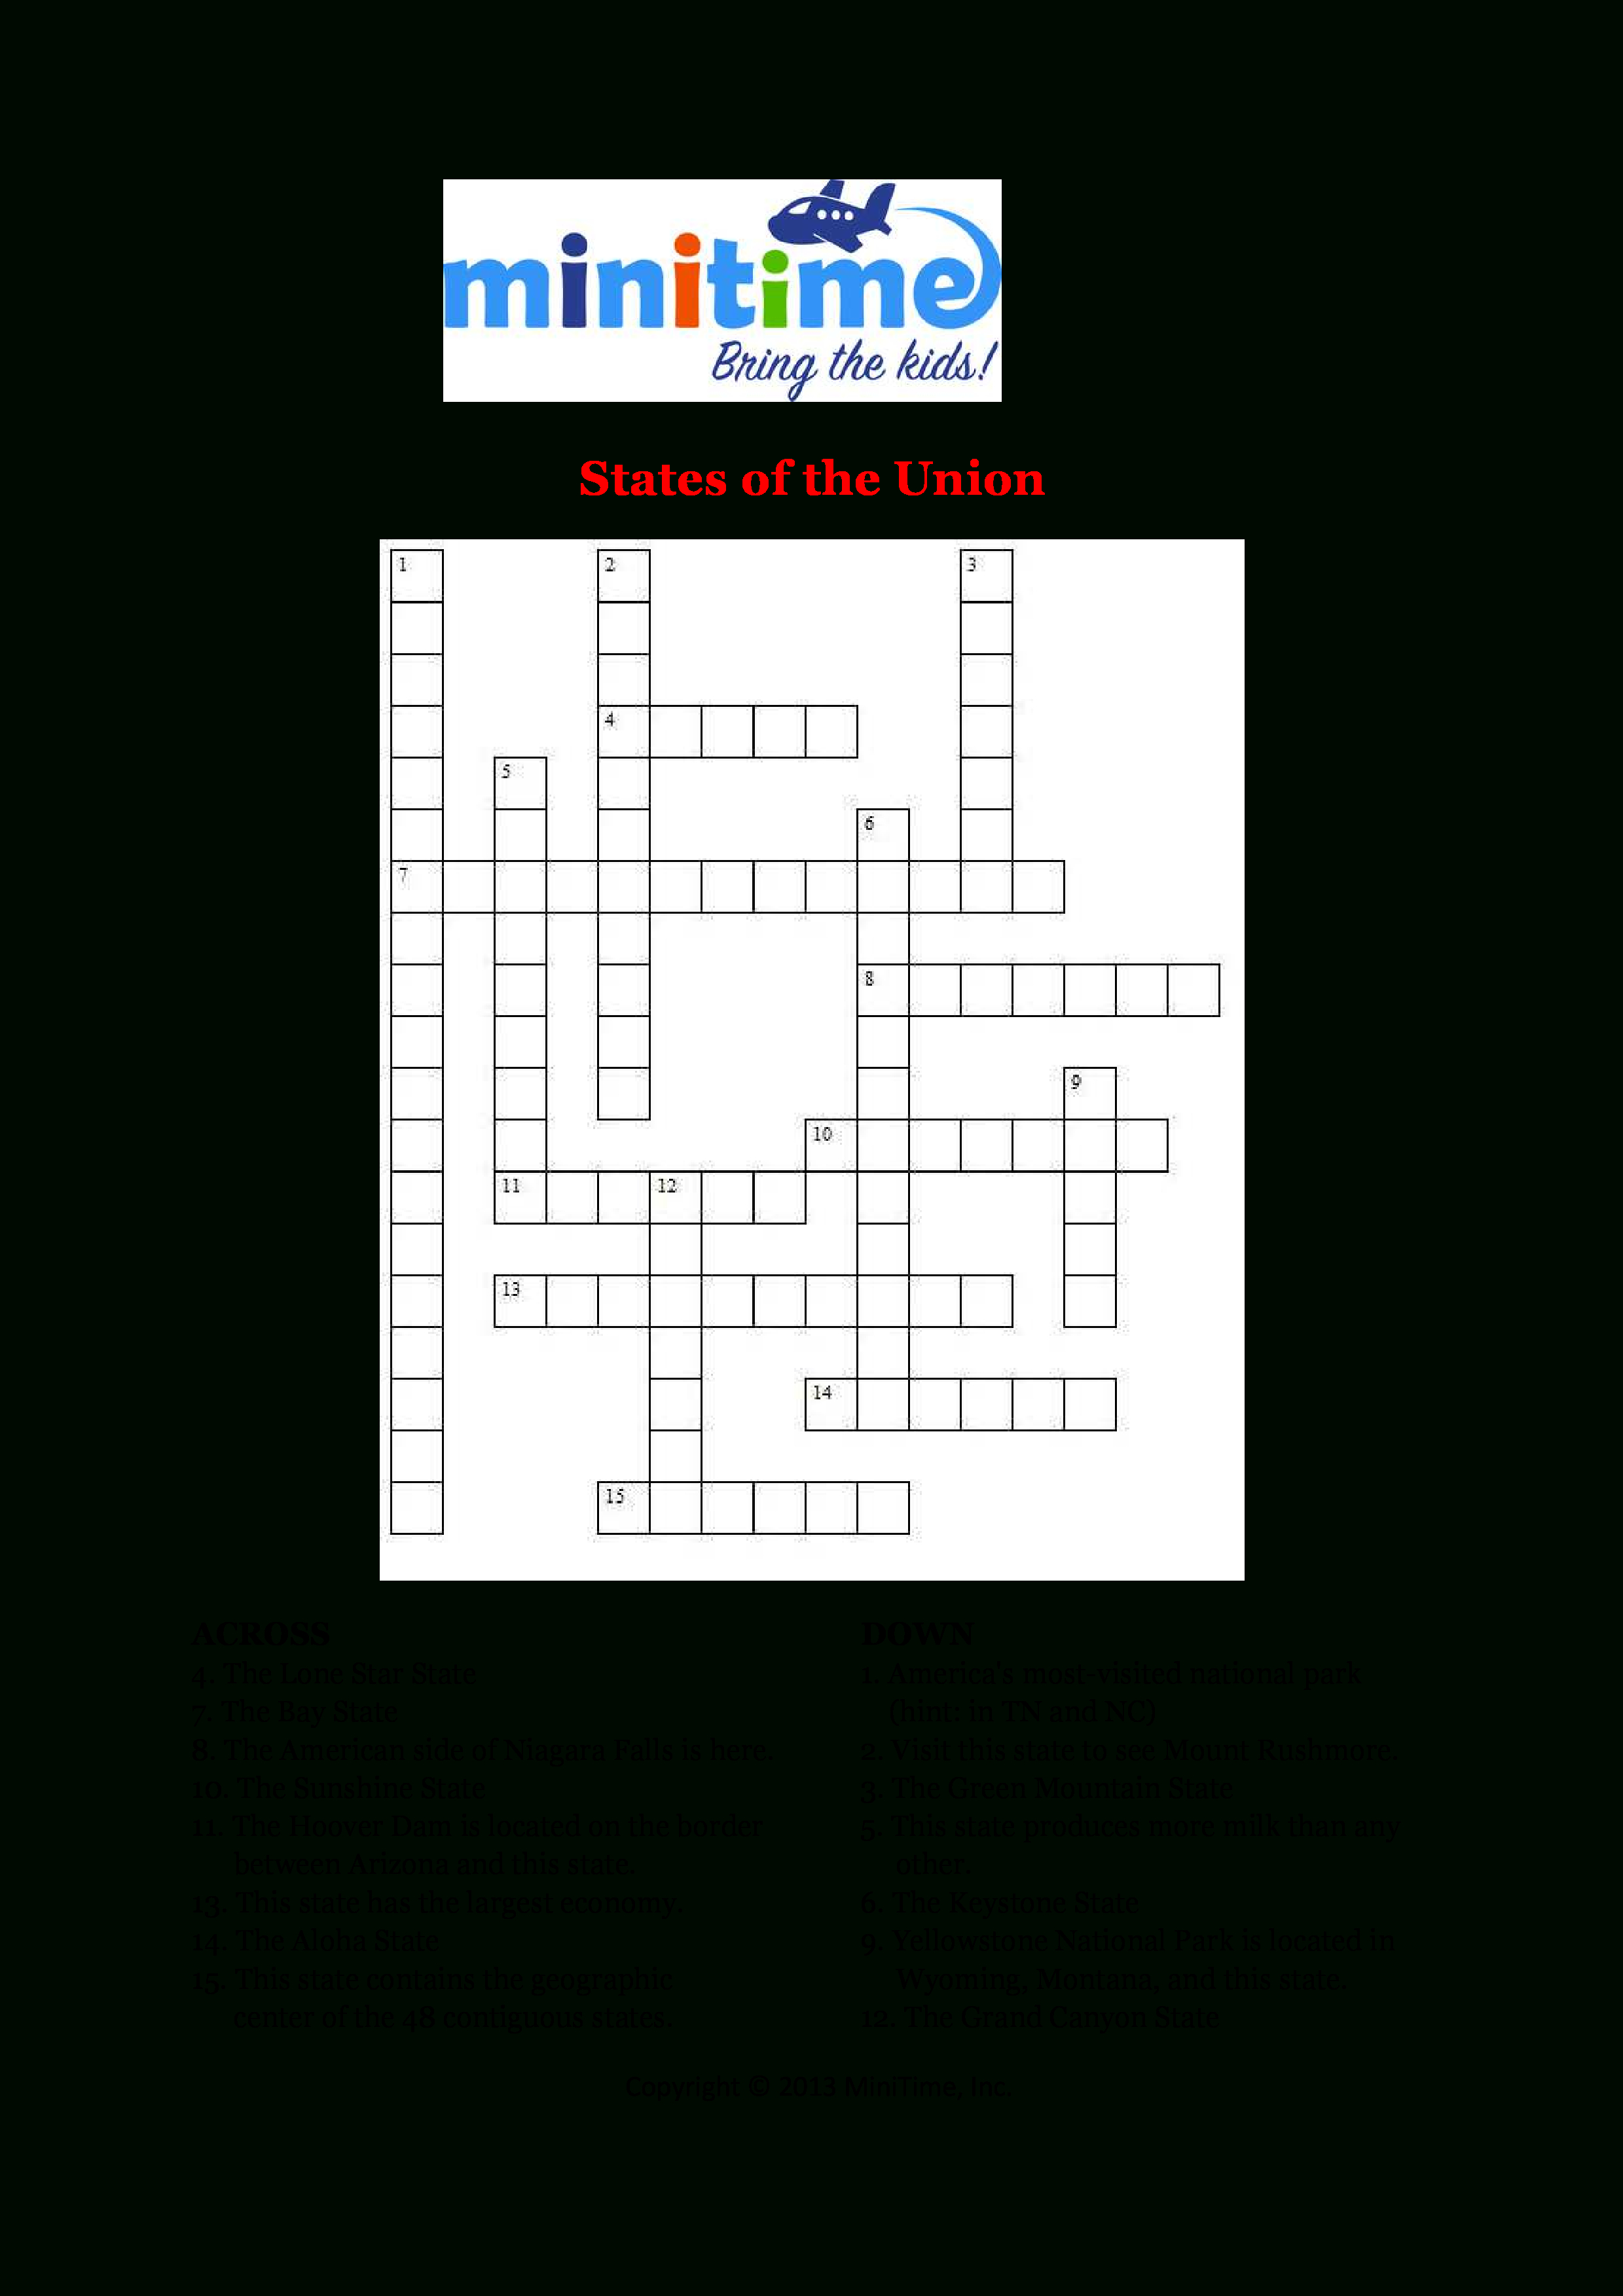 Us States Fun Facts Crossword Puzzles | Free Printable Travel - Printable Usa Crossword Puzzles